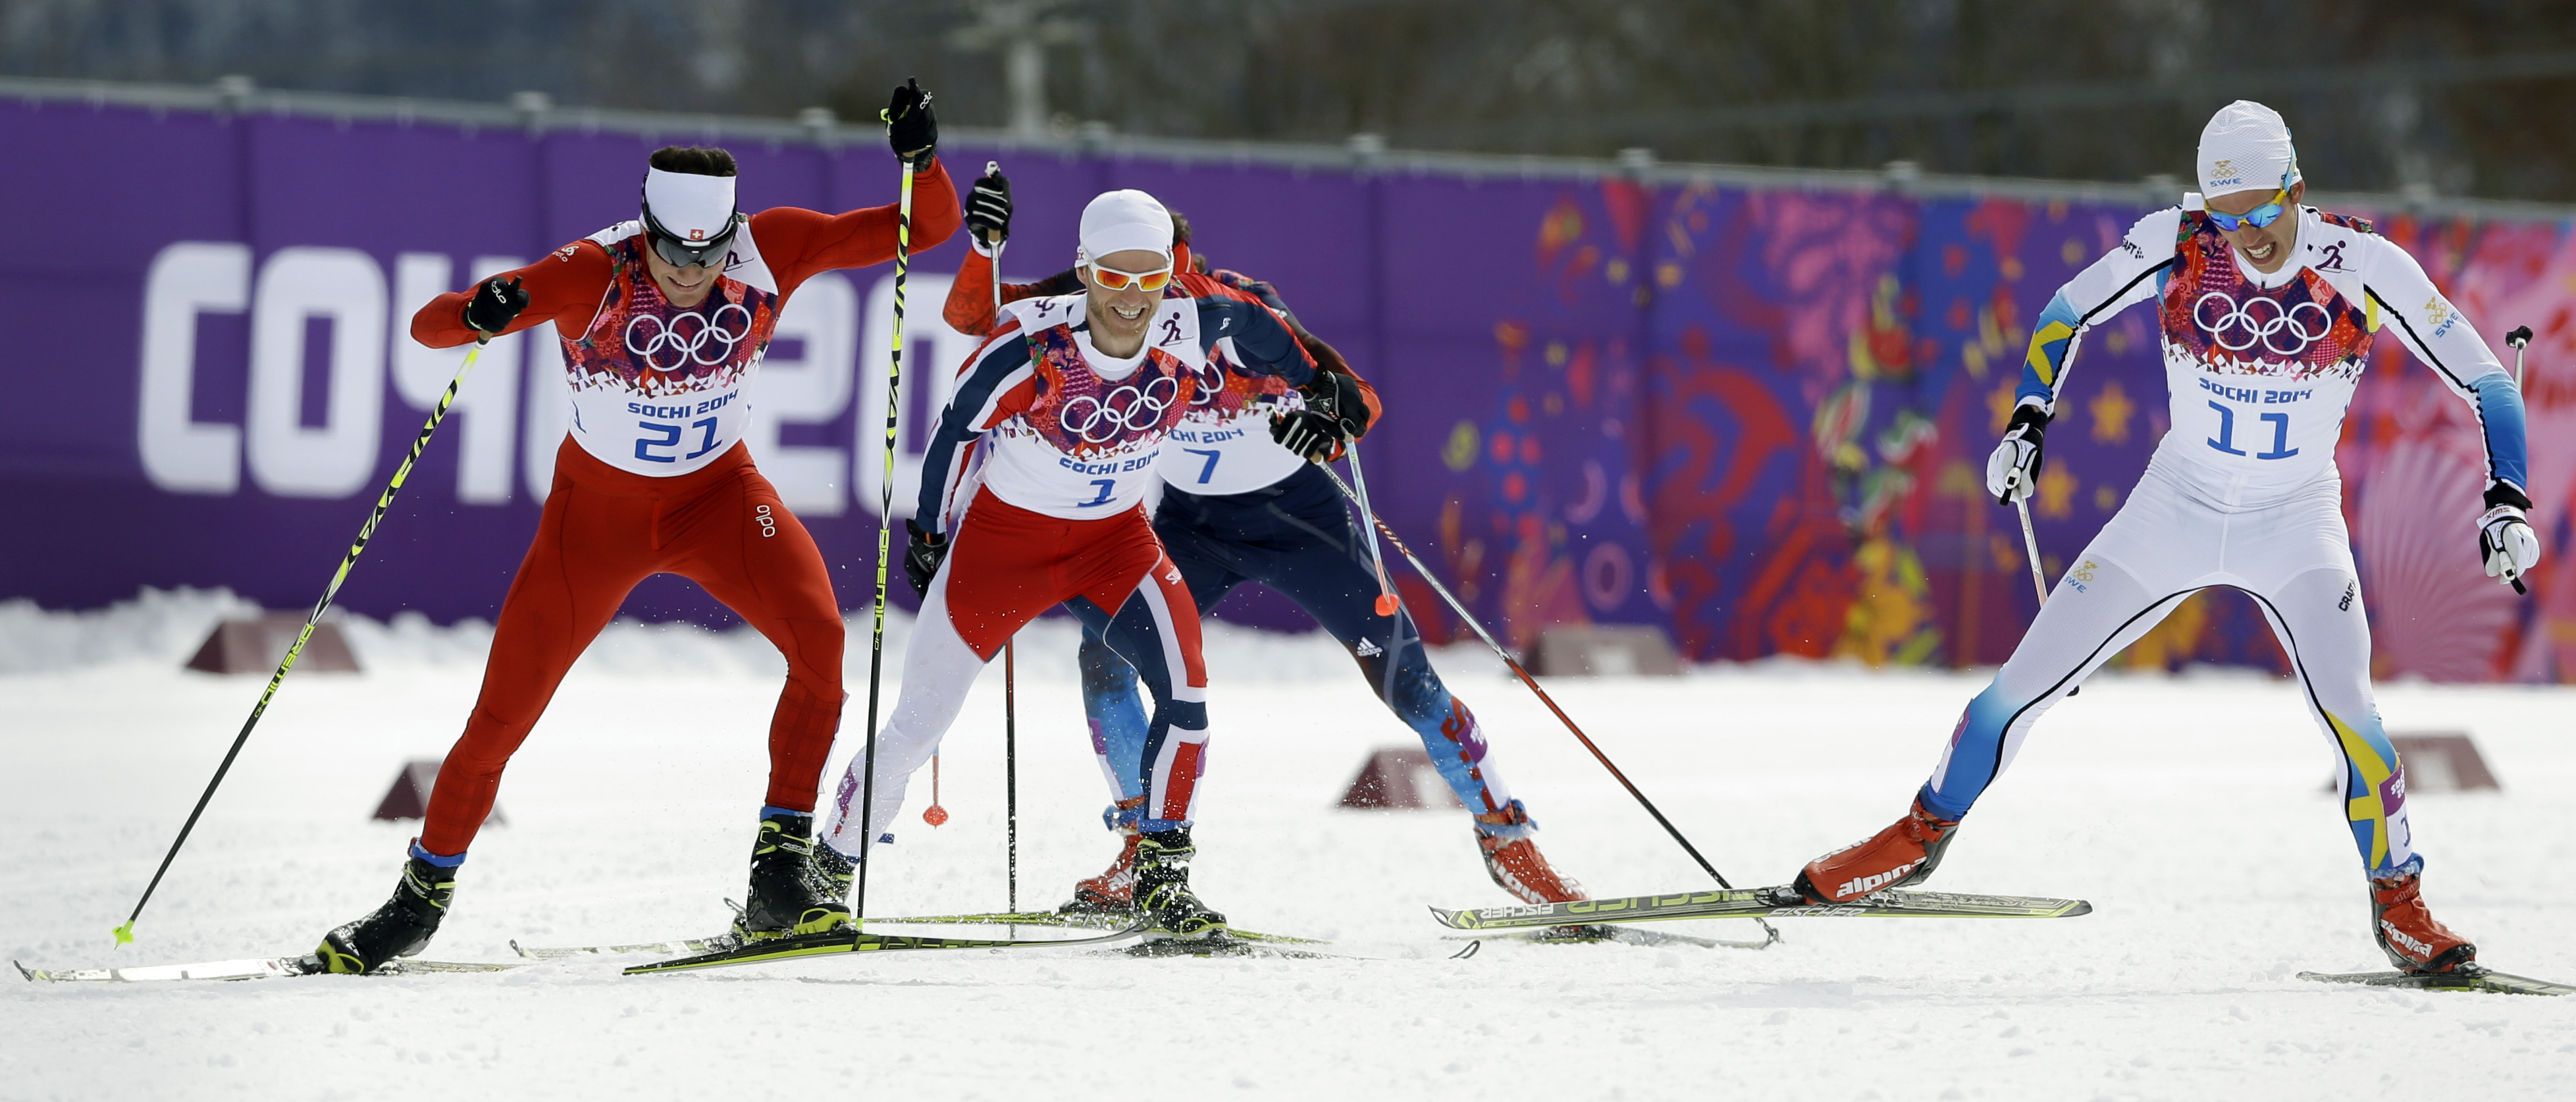 Switzerland's Dario Cologna, left, competes alongside Norway's Martin Johnsrud Sundby, Russia's Maxim Vylegzhanin and Sweden's Marcus Hellner, right, during the men's cross-country 30k skiathlon, at the 2014 Winter Olympics, Sunday, Feb. 9, 2014, in Krasnaya Polyana, Russia. Cologna got the gold, Hellner clinched the silver and  Sundby won the bronze medal. (AP Photo/Kirsty Wigglesworth)